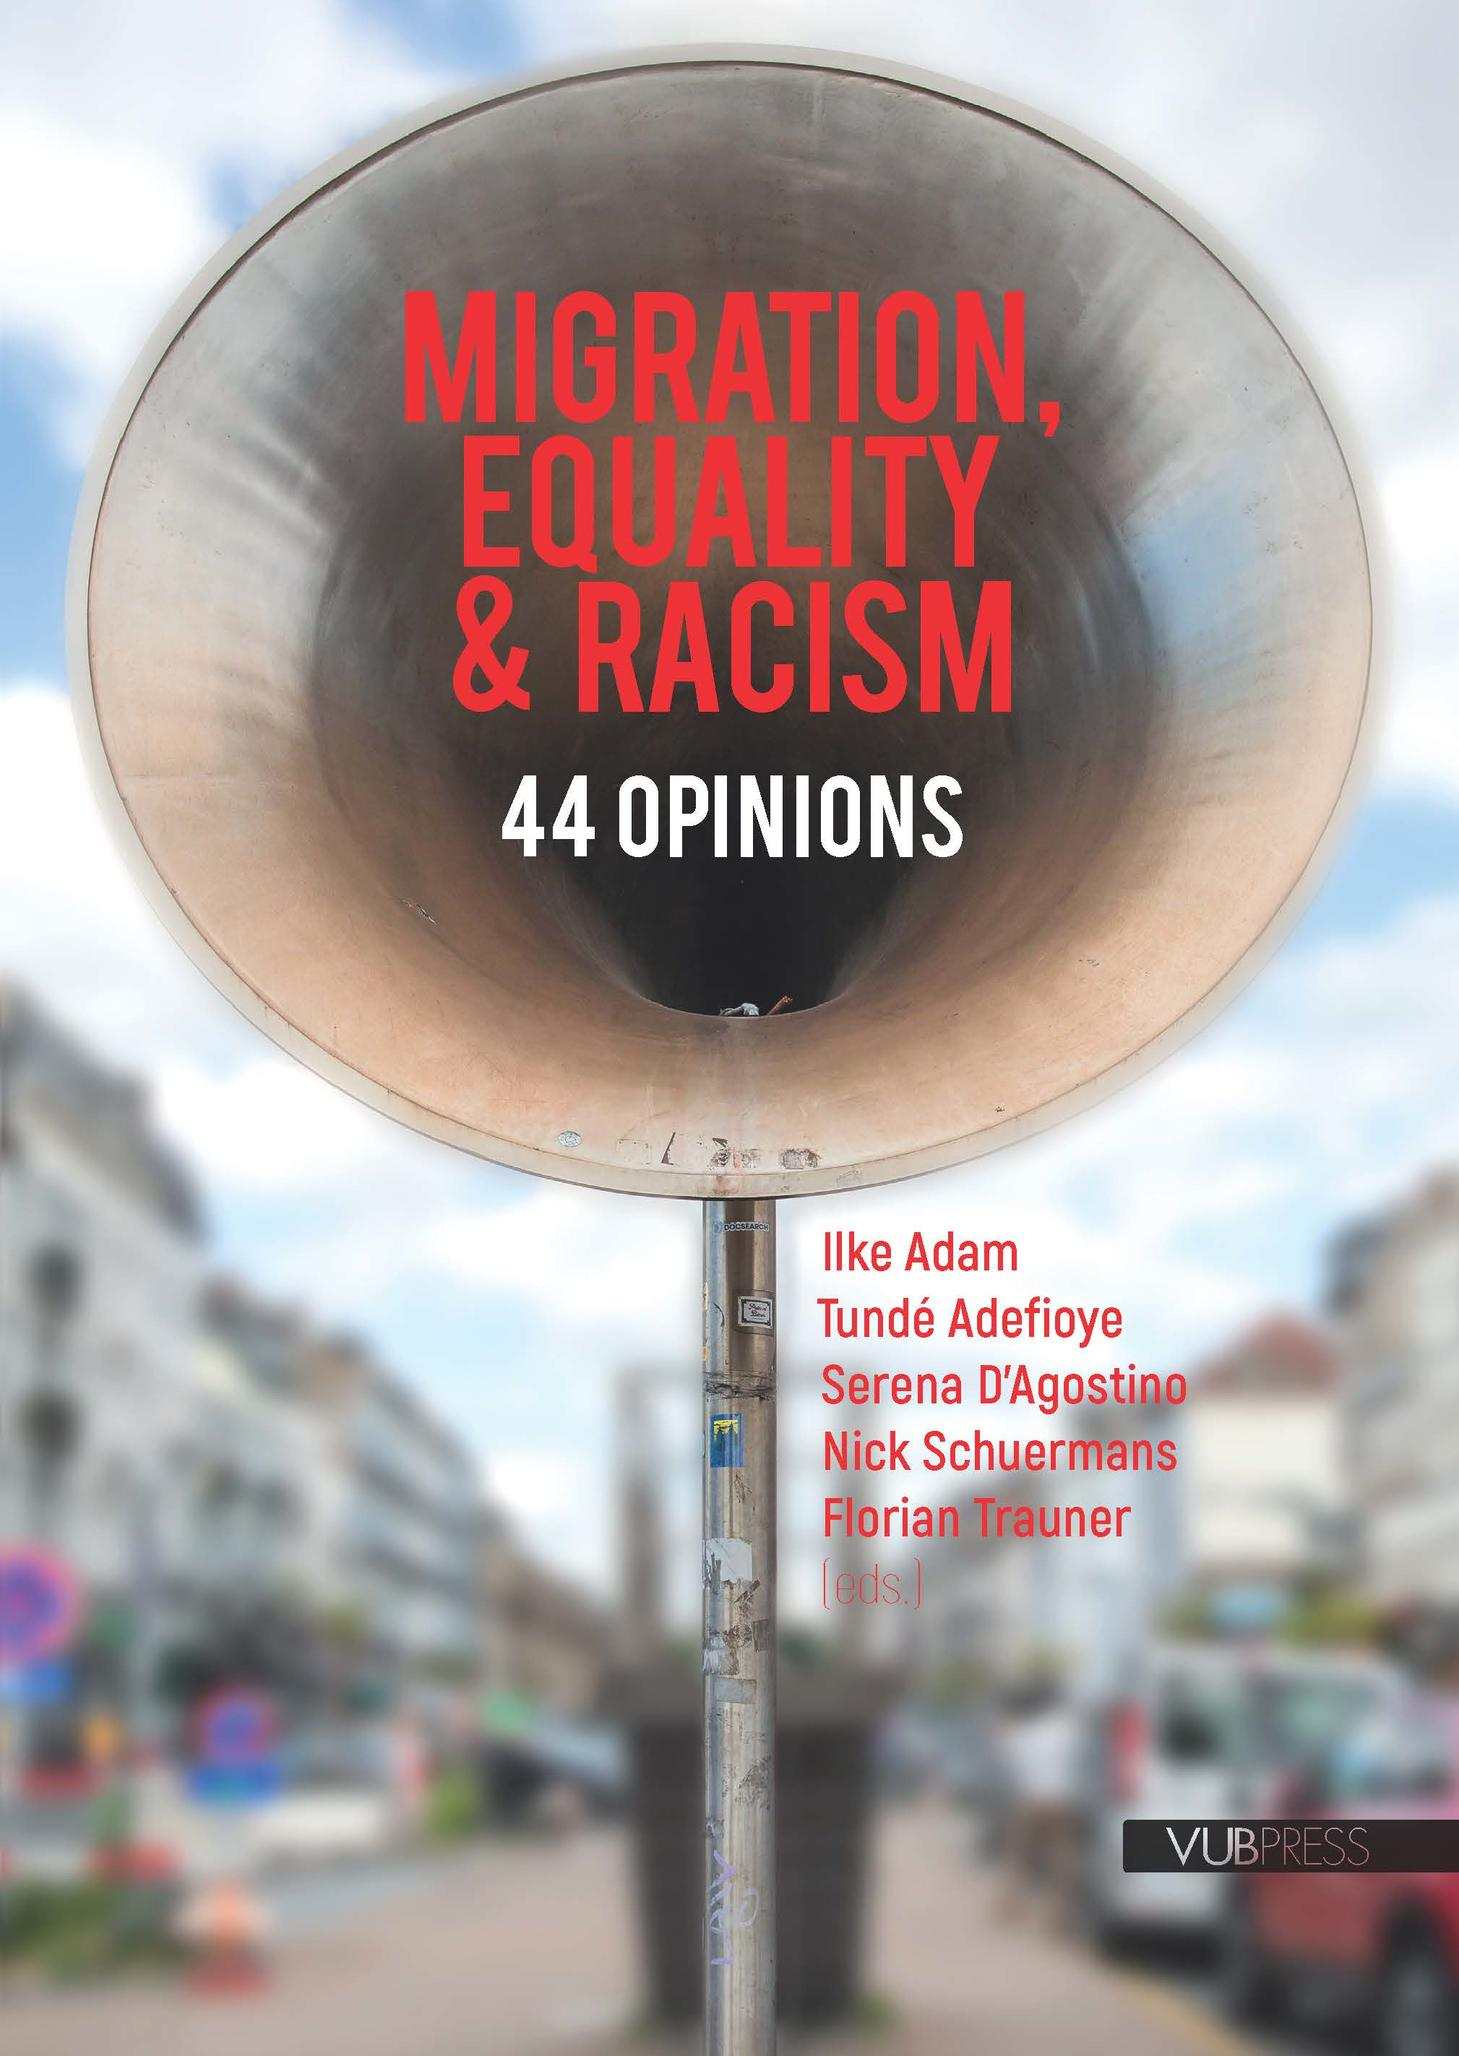 MIGRATION, EQUALITY AND RACISM